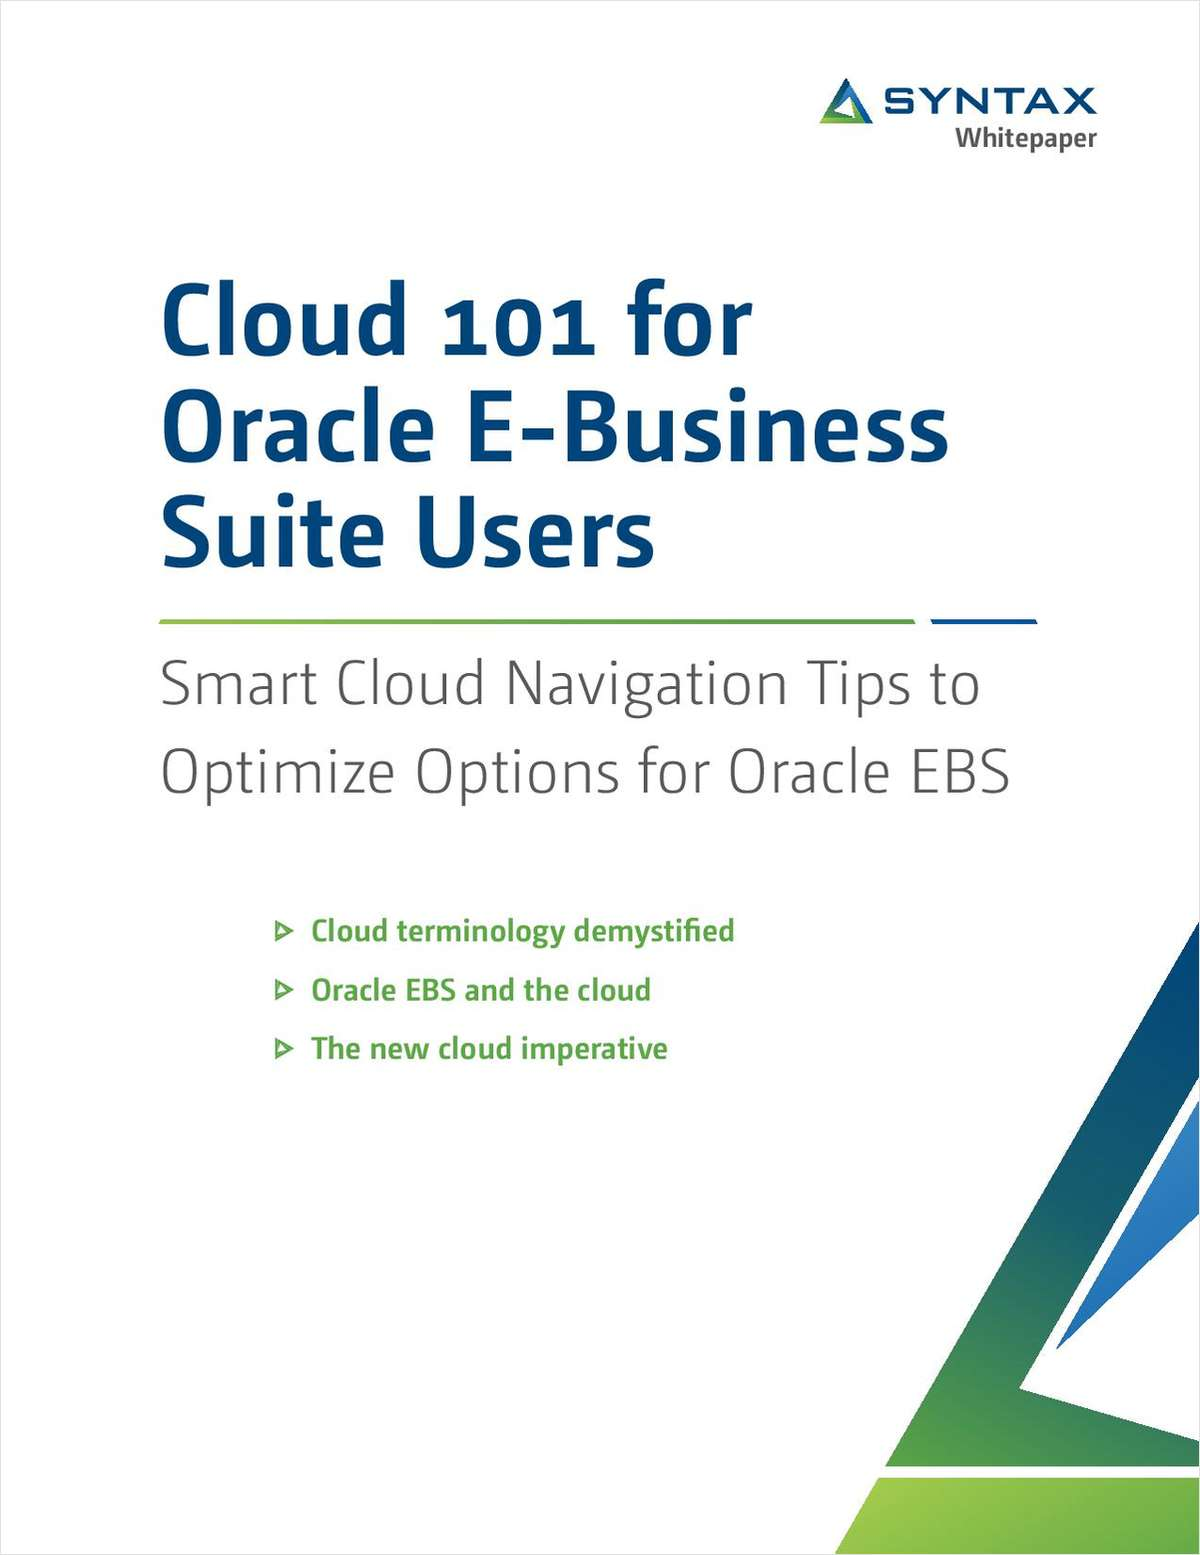 Cloud 101 for Oracle E-Business Suite Users